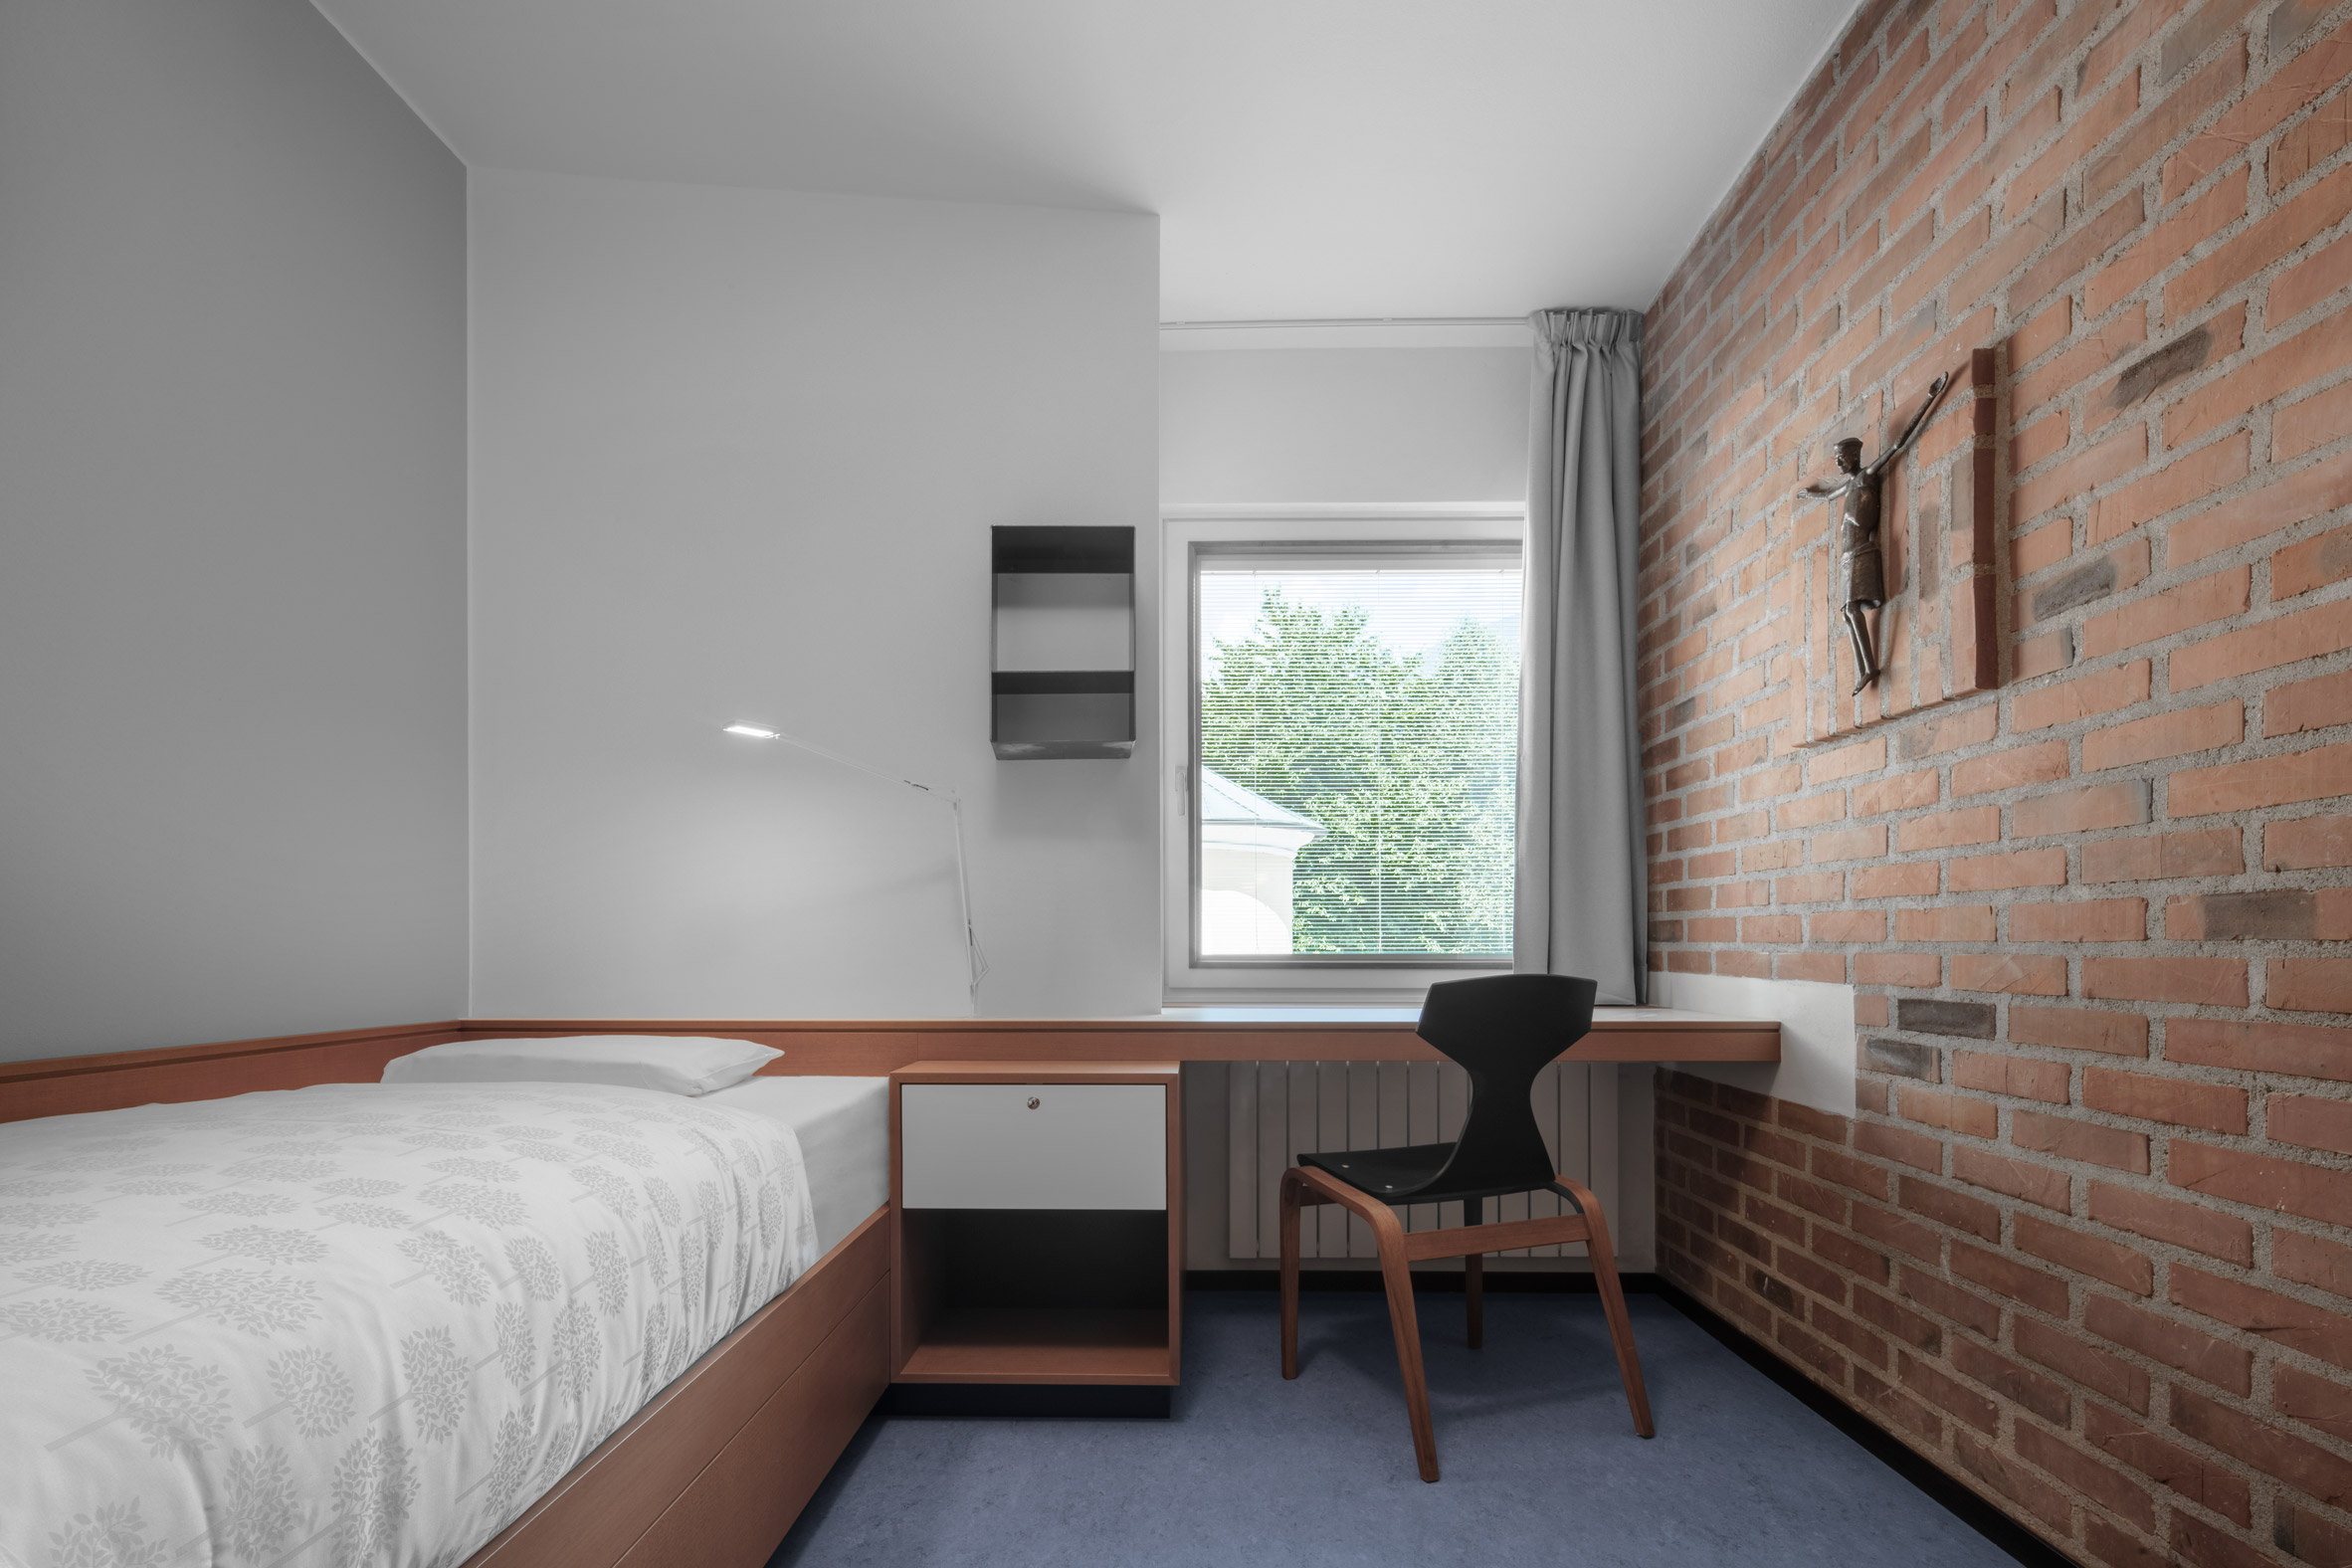 Bedroom in Cusanus Academy renovation by MoDus Architects